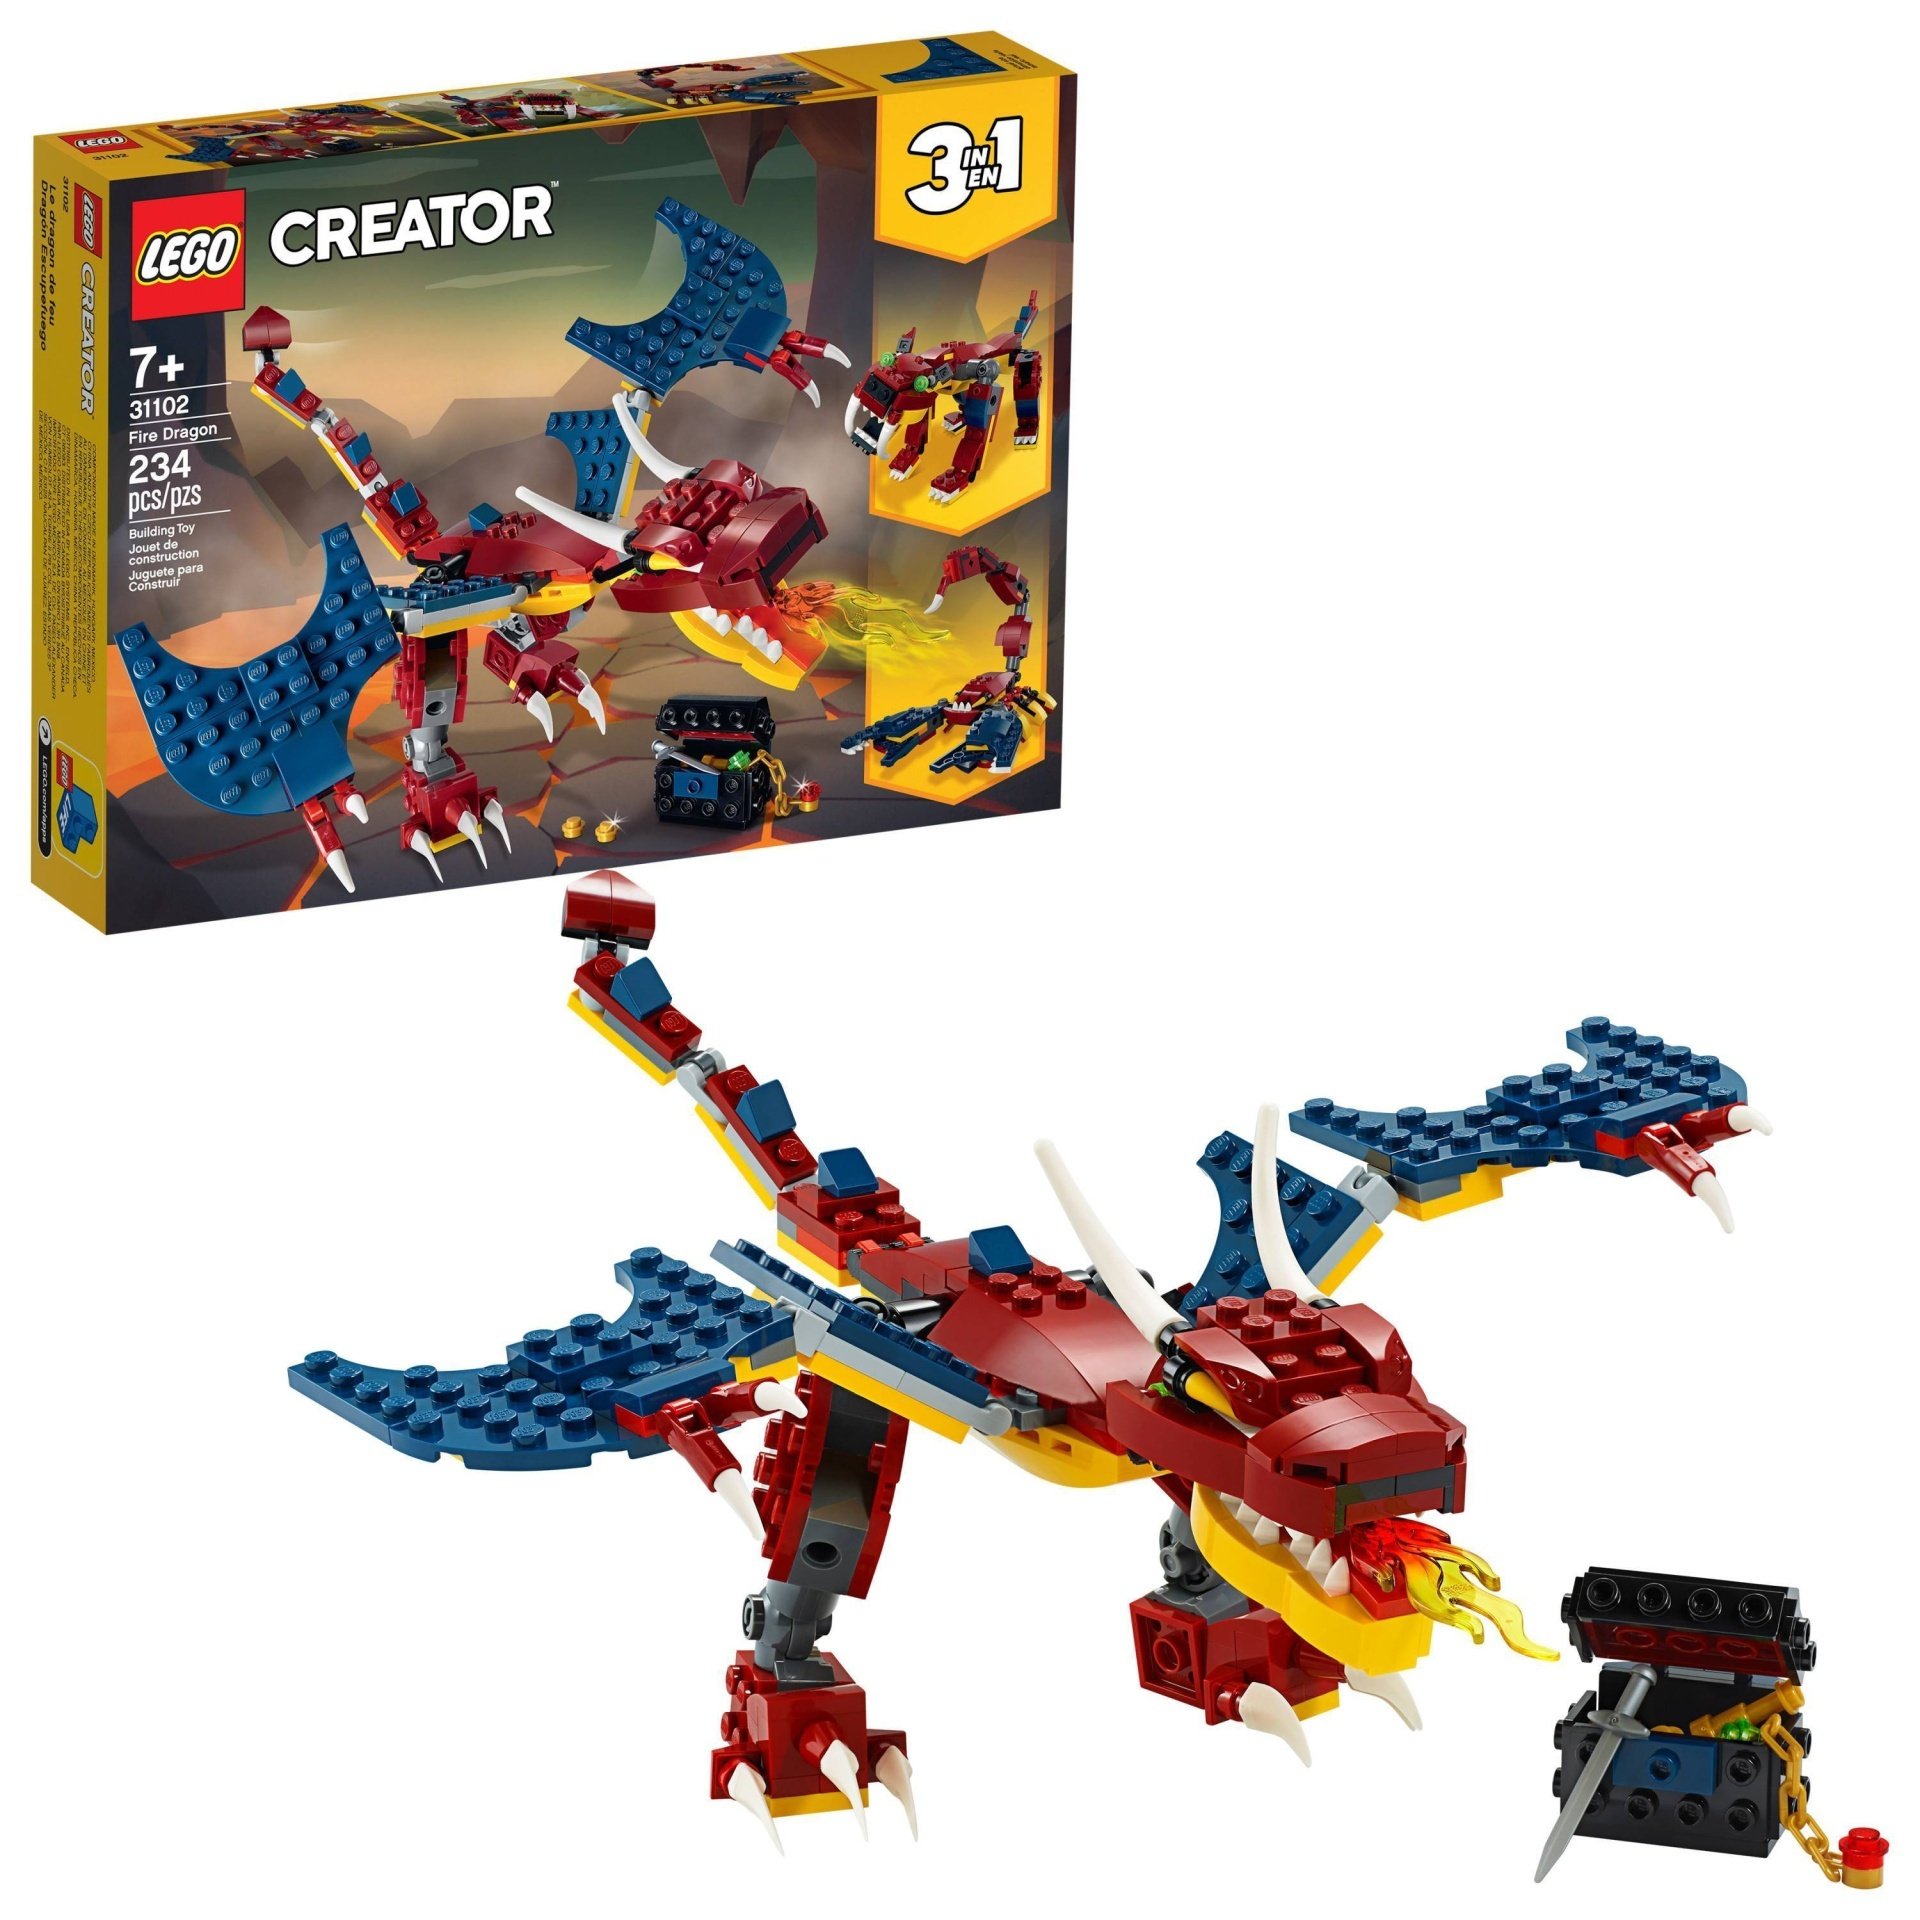 slide 1 of 7, LEGO Creator 3-in-1 Fire dragon 31102 Fearsome Building Kit,